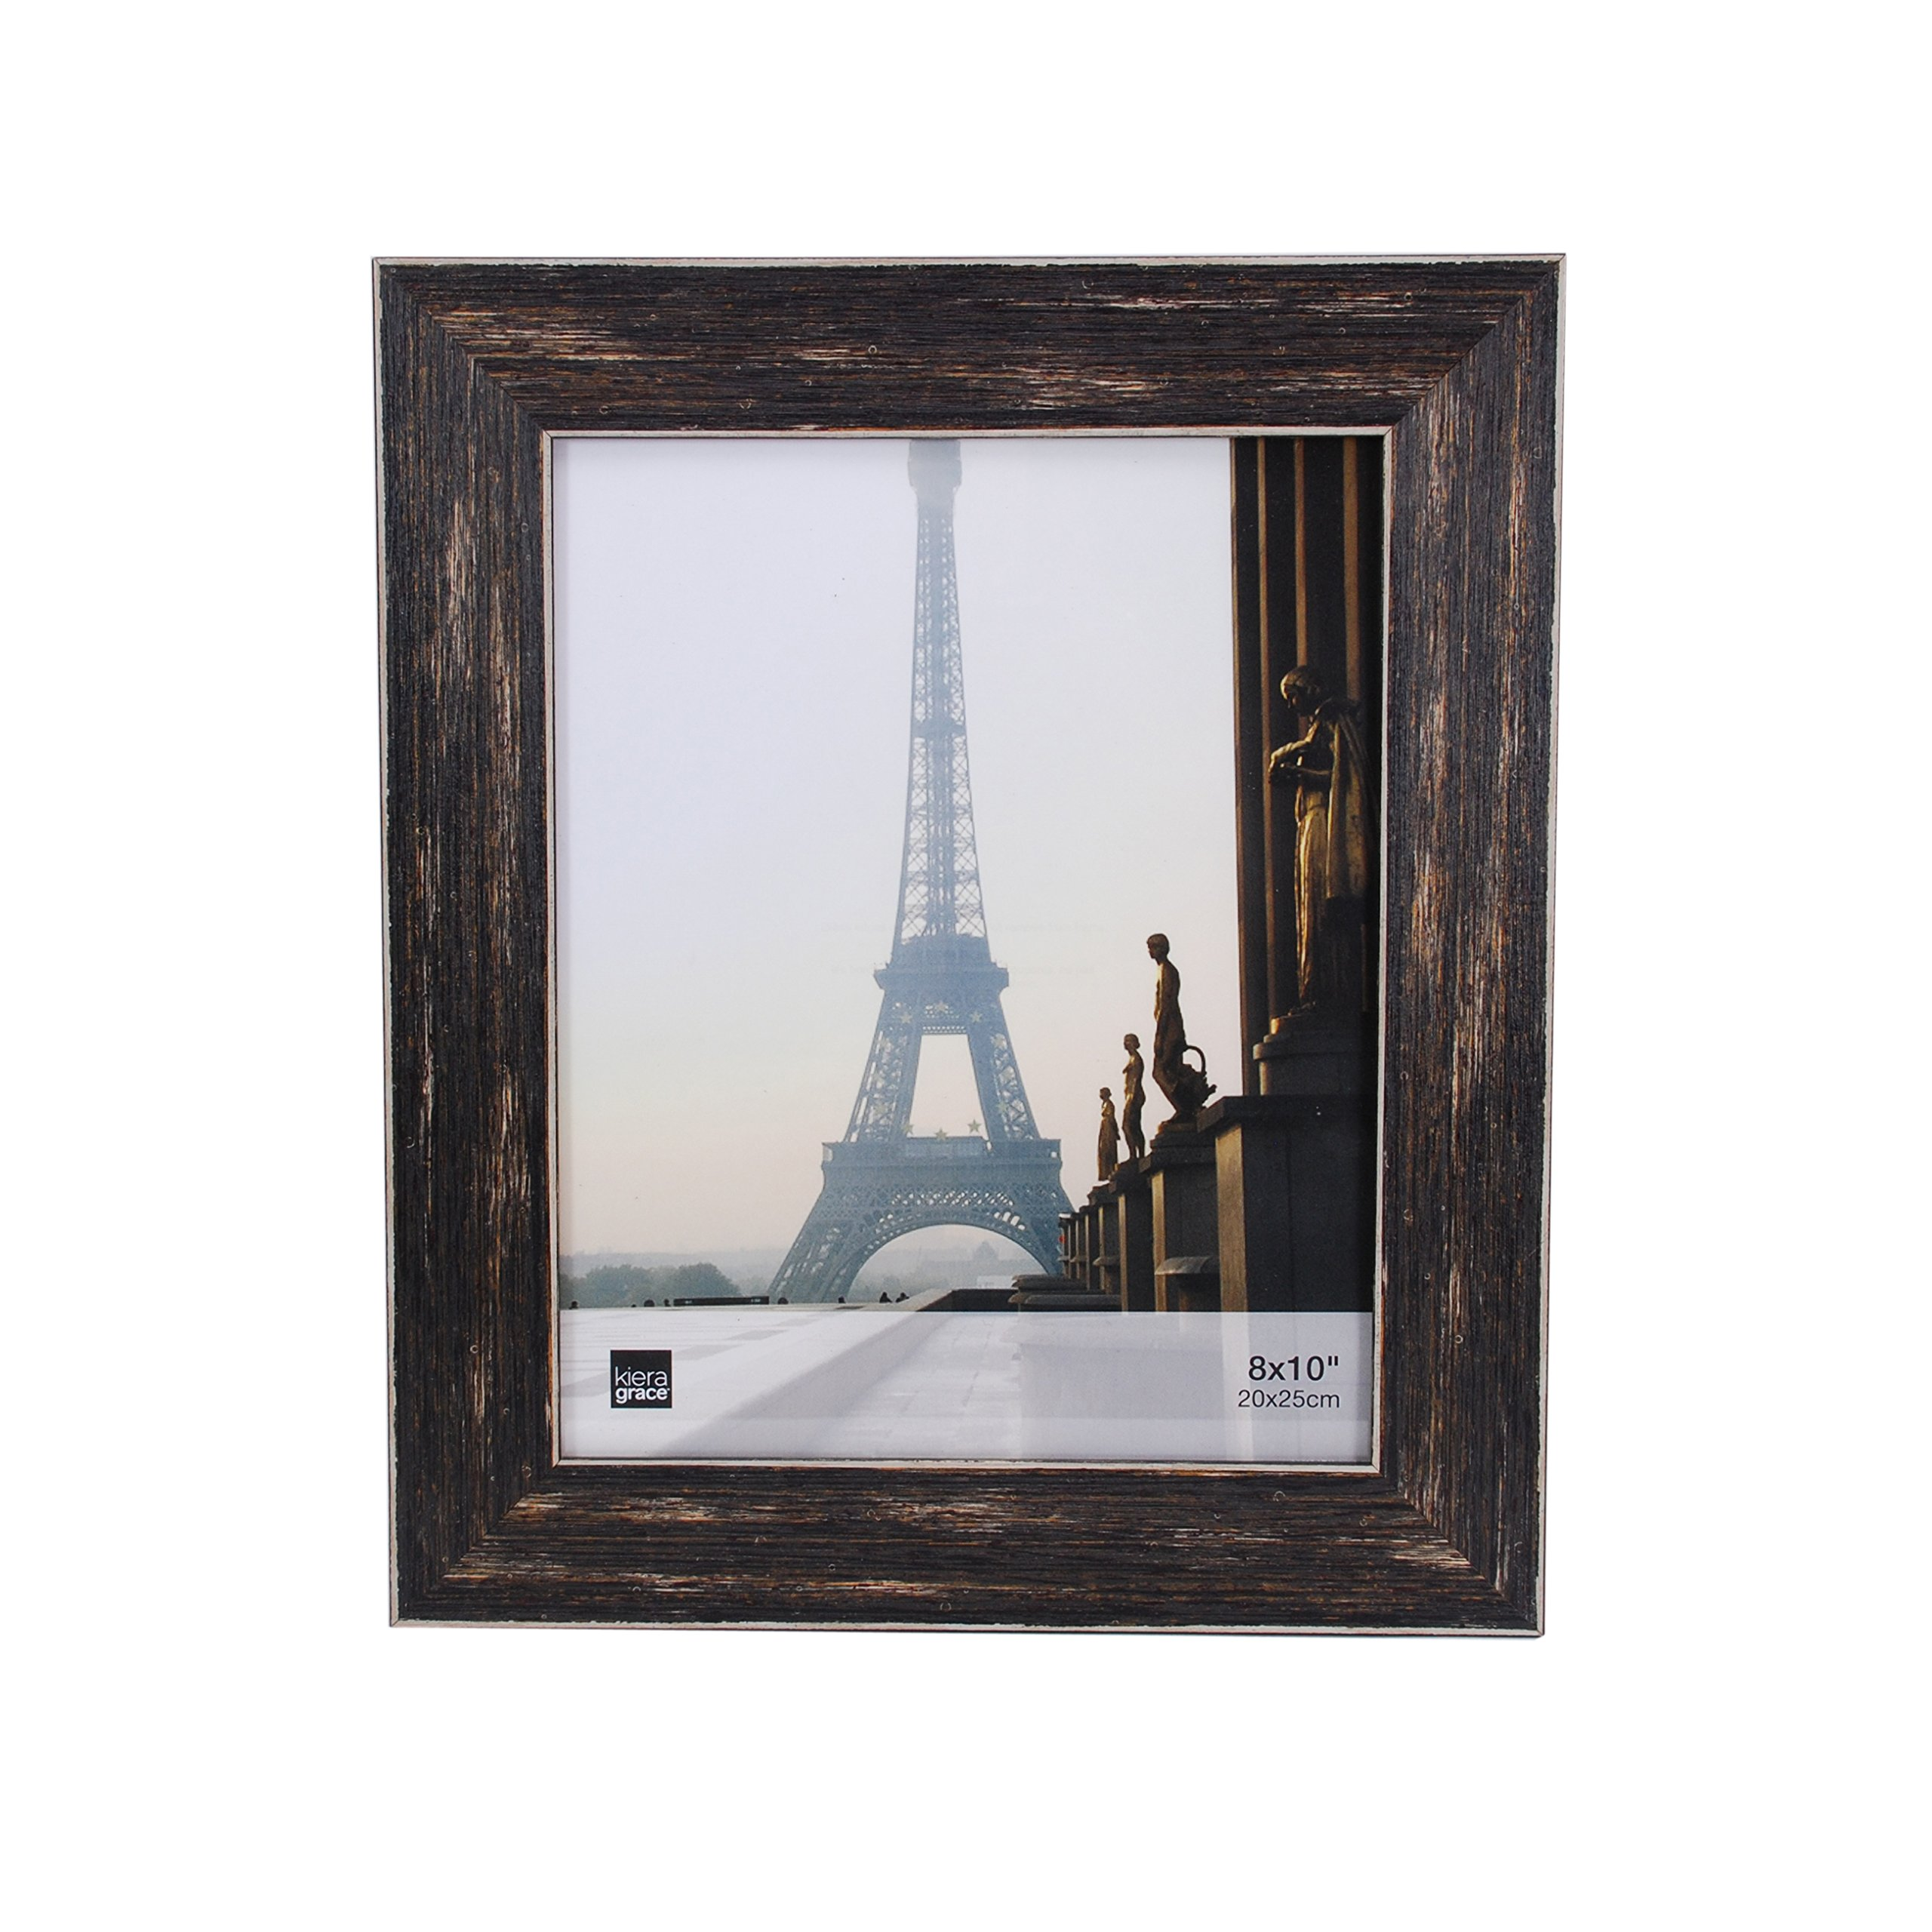 kieragrace Emery Picture Frame, 8 by 10-Inch, Plastic Resin, Weathered Barnwood Finish by kieragrace